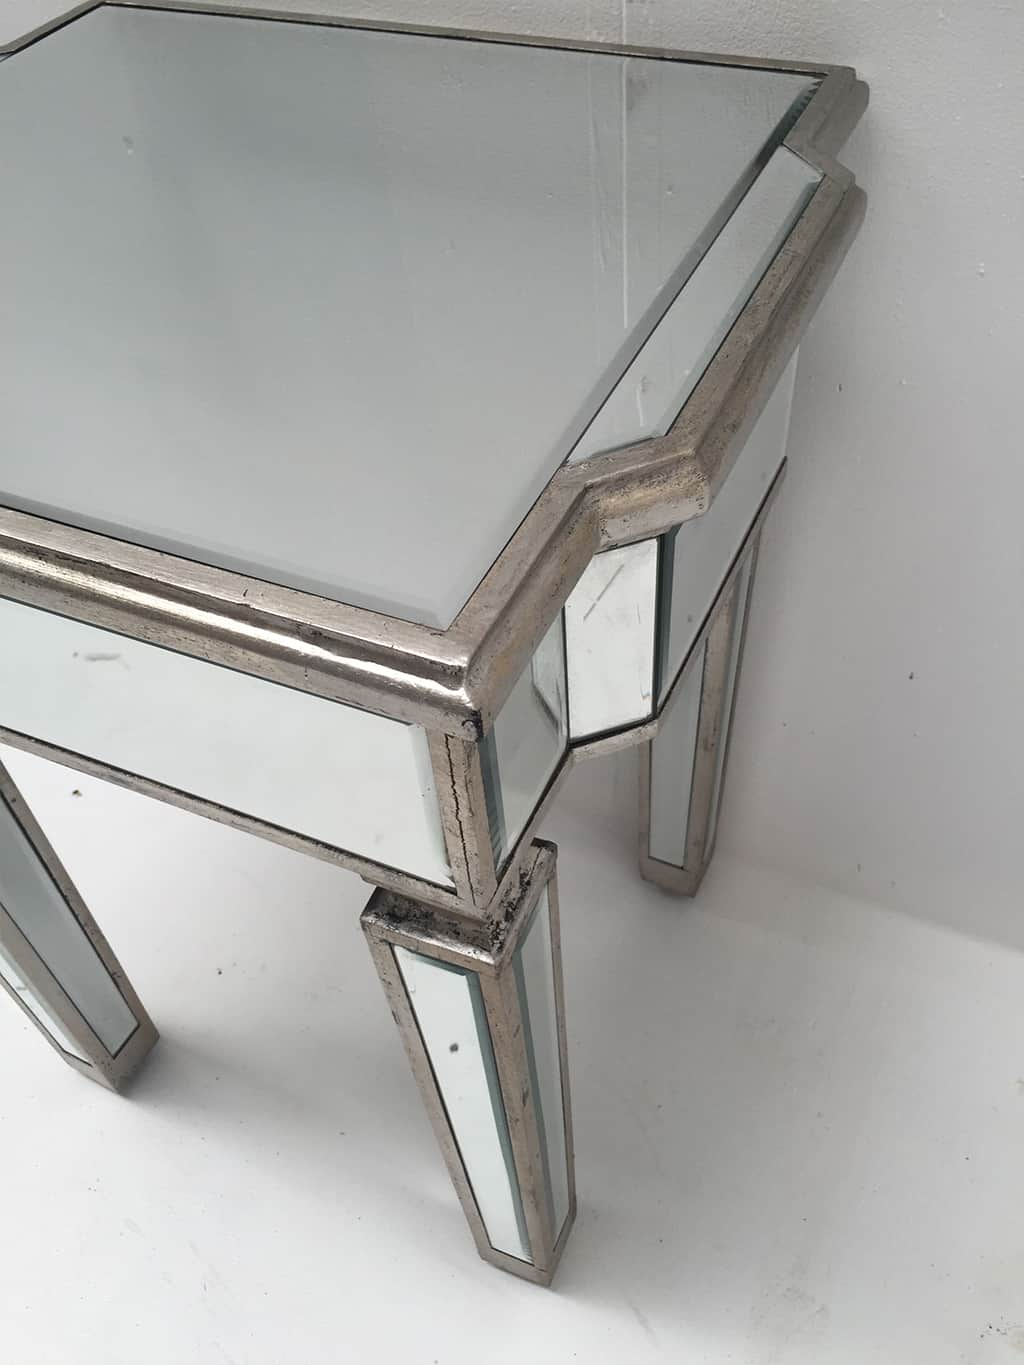 Charleston mirrored side table, wood and mirror, antiqued silver finish